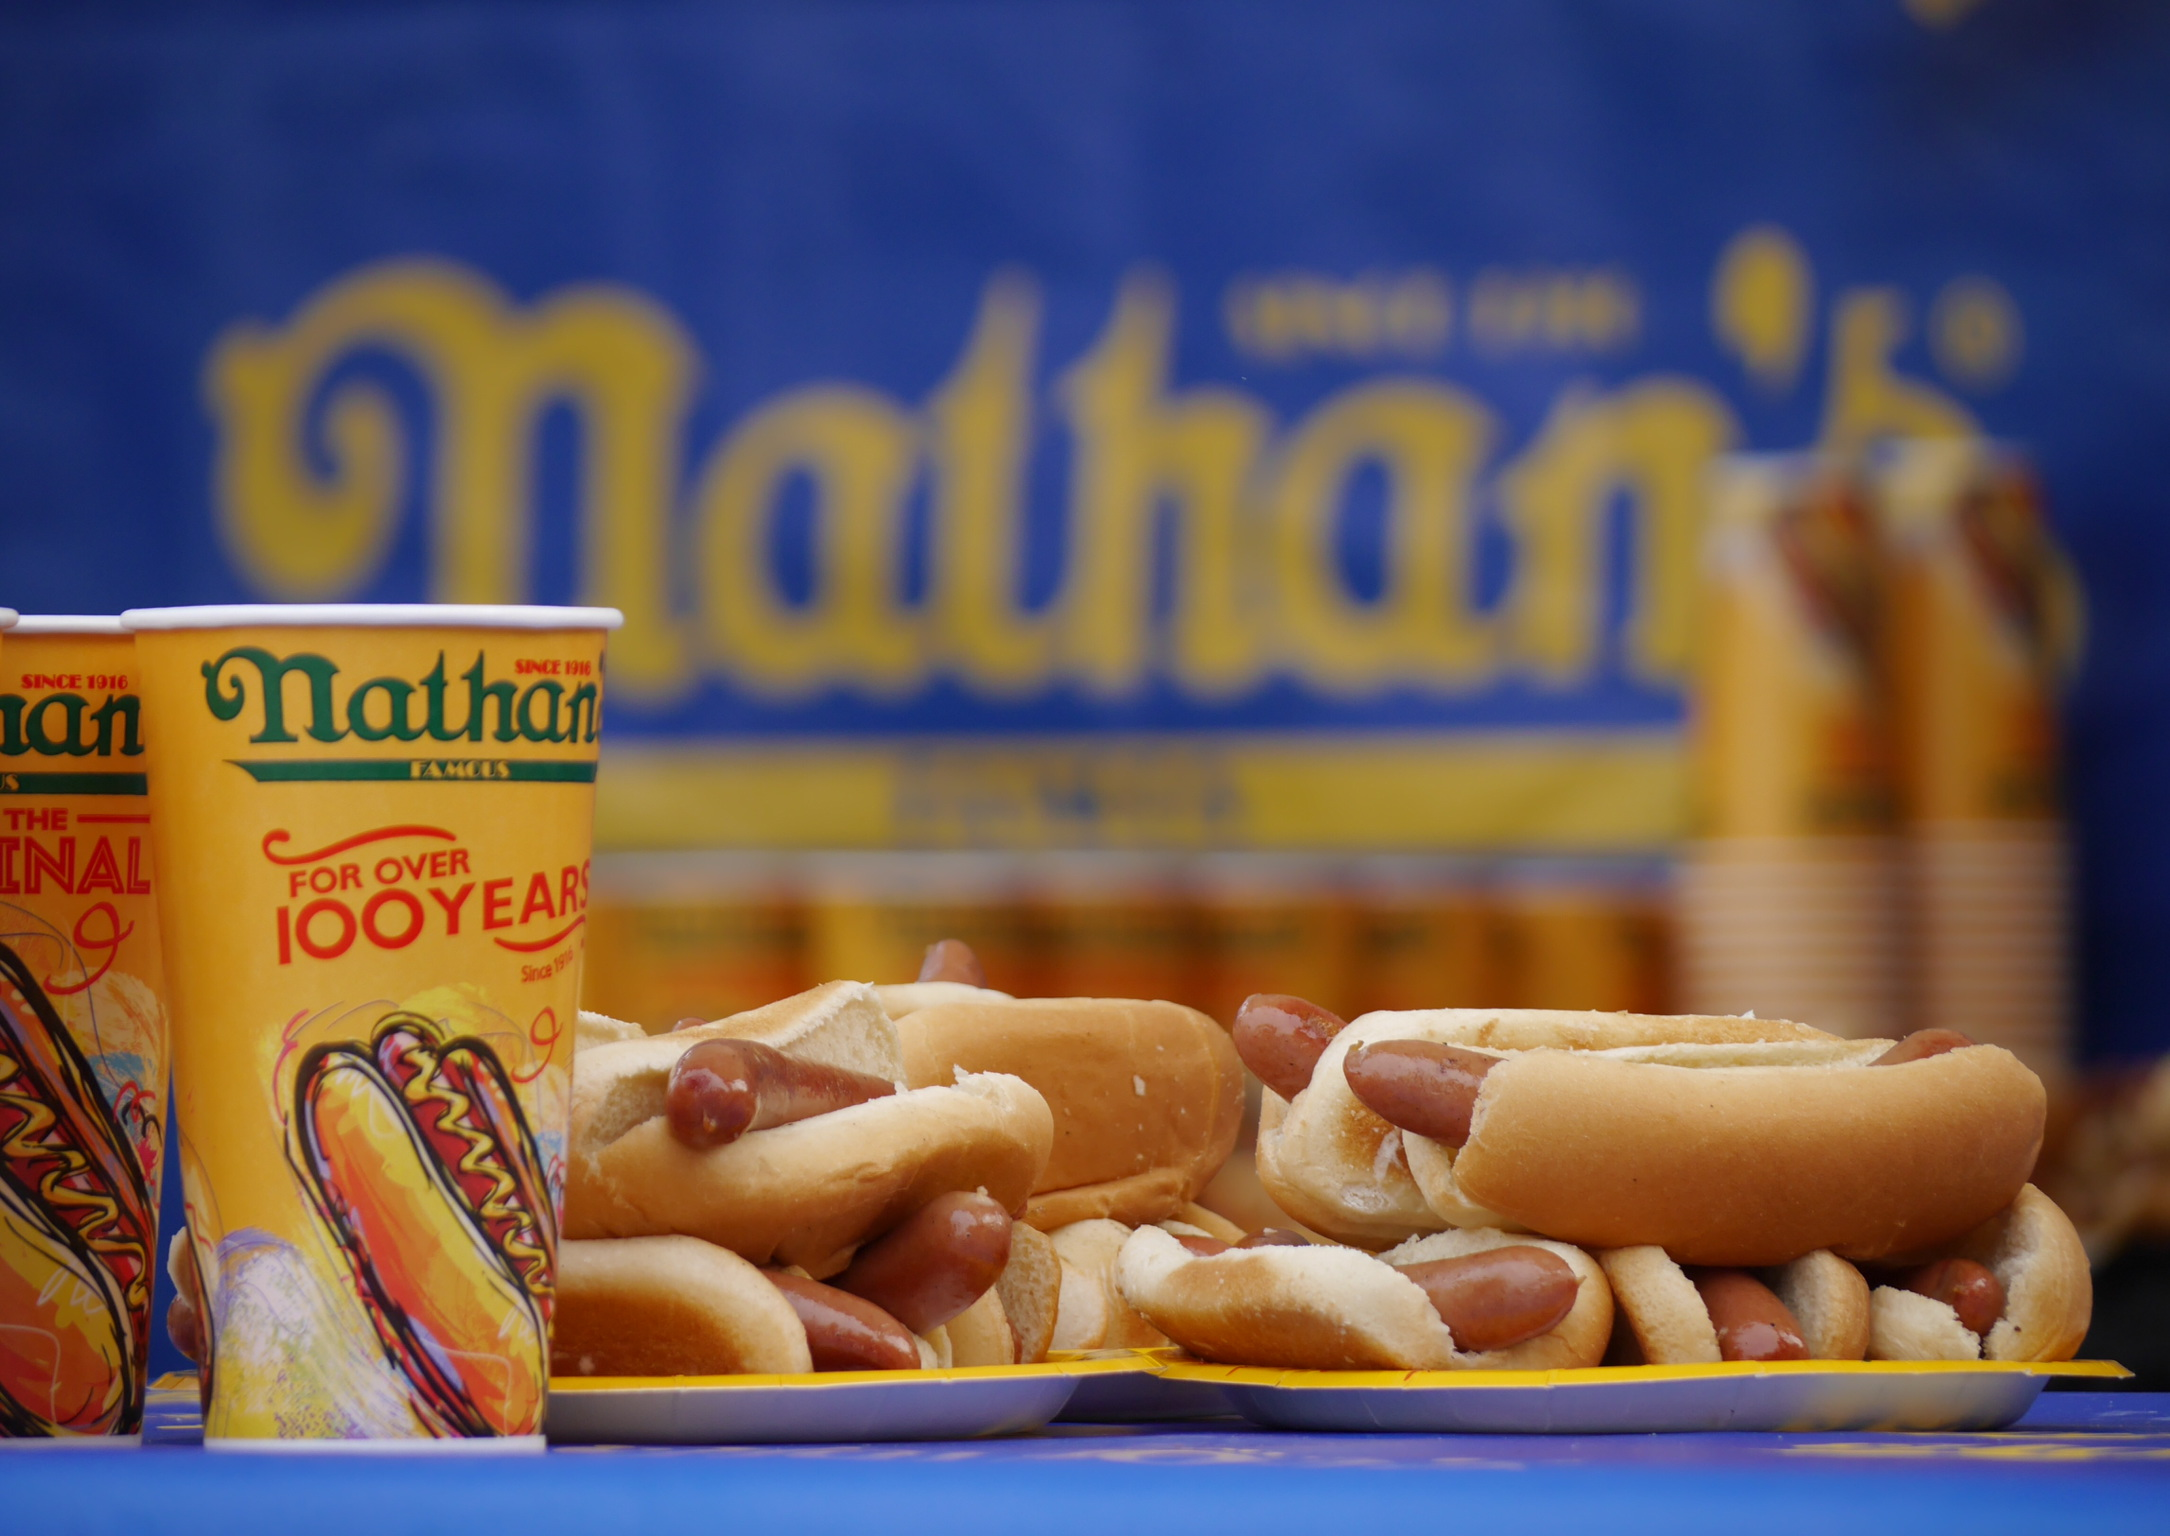 Nathan S Hot Dog Locations